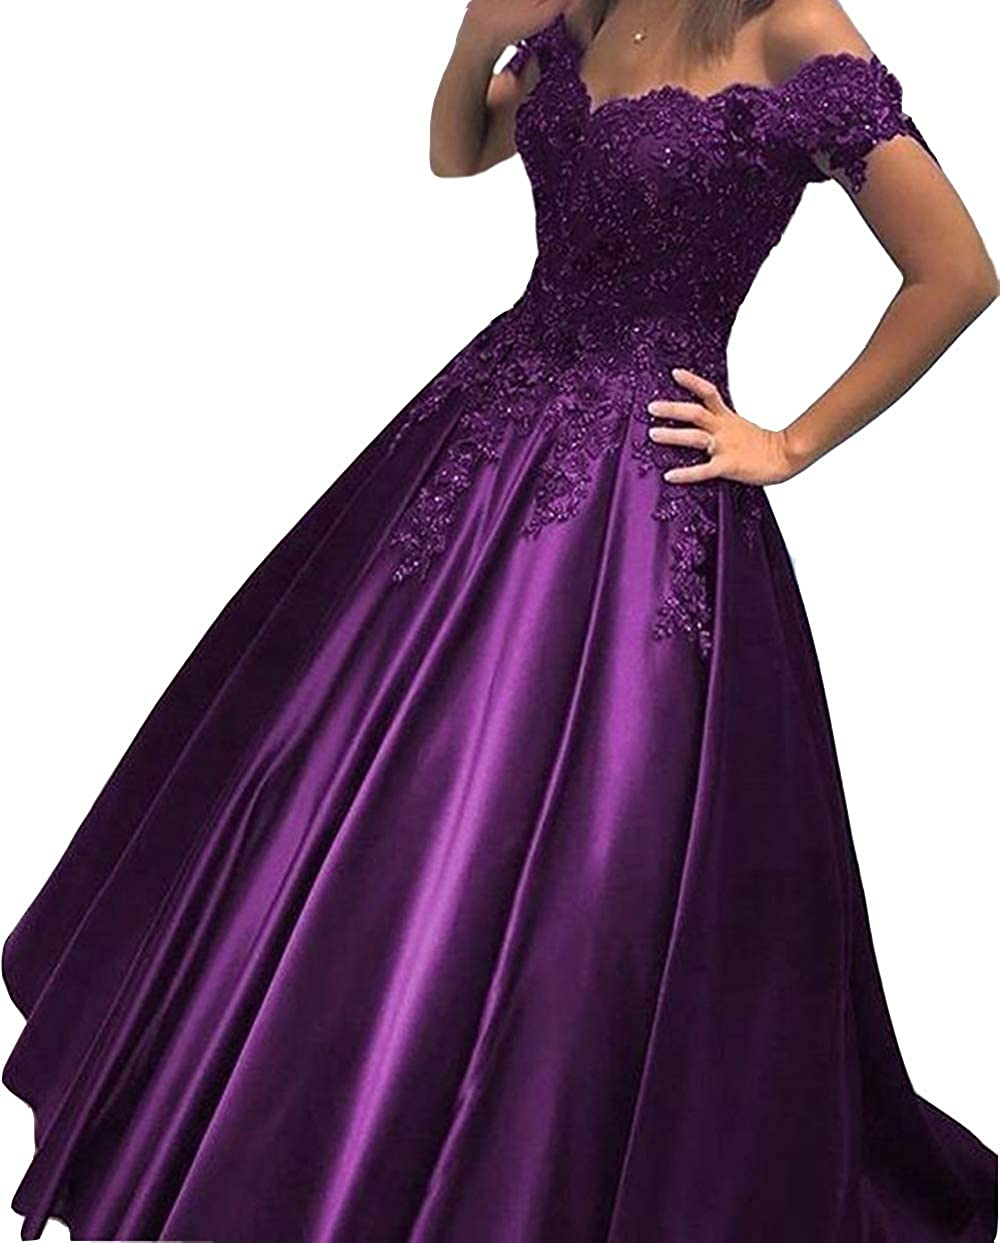 Purple FTBY Off Shoulder Prom Dress Satin Long Evening Party Dress Formal Gown for Women Lace Appliqued